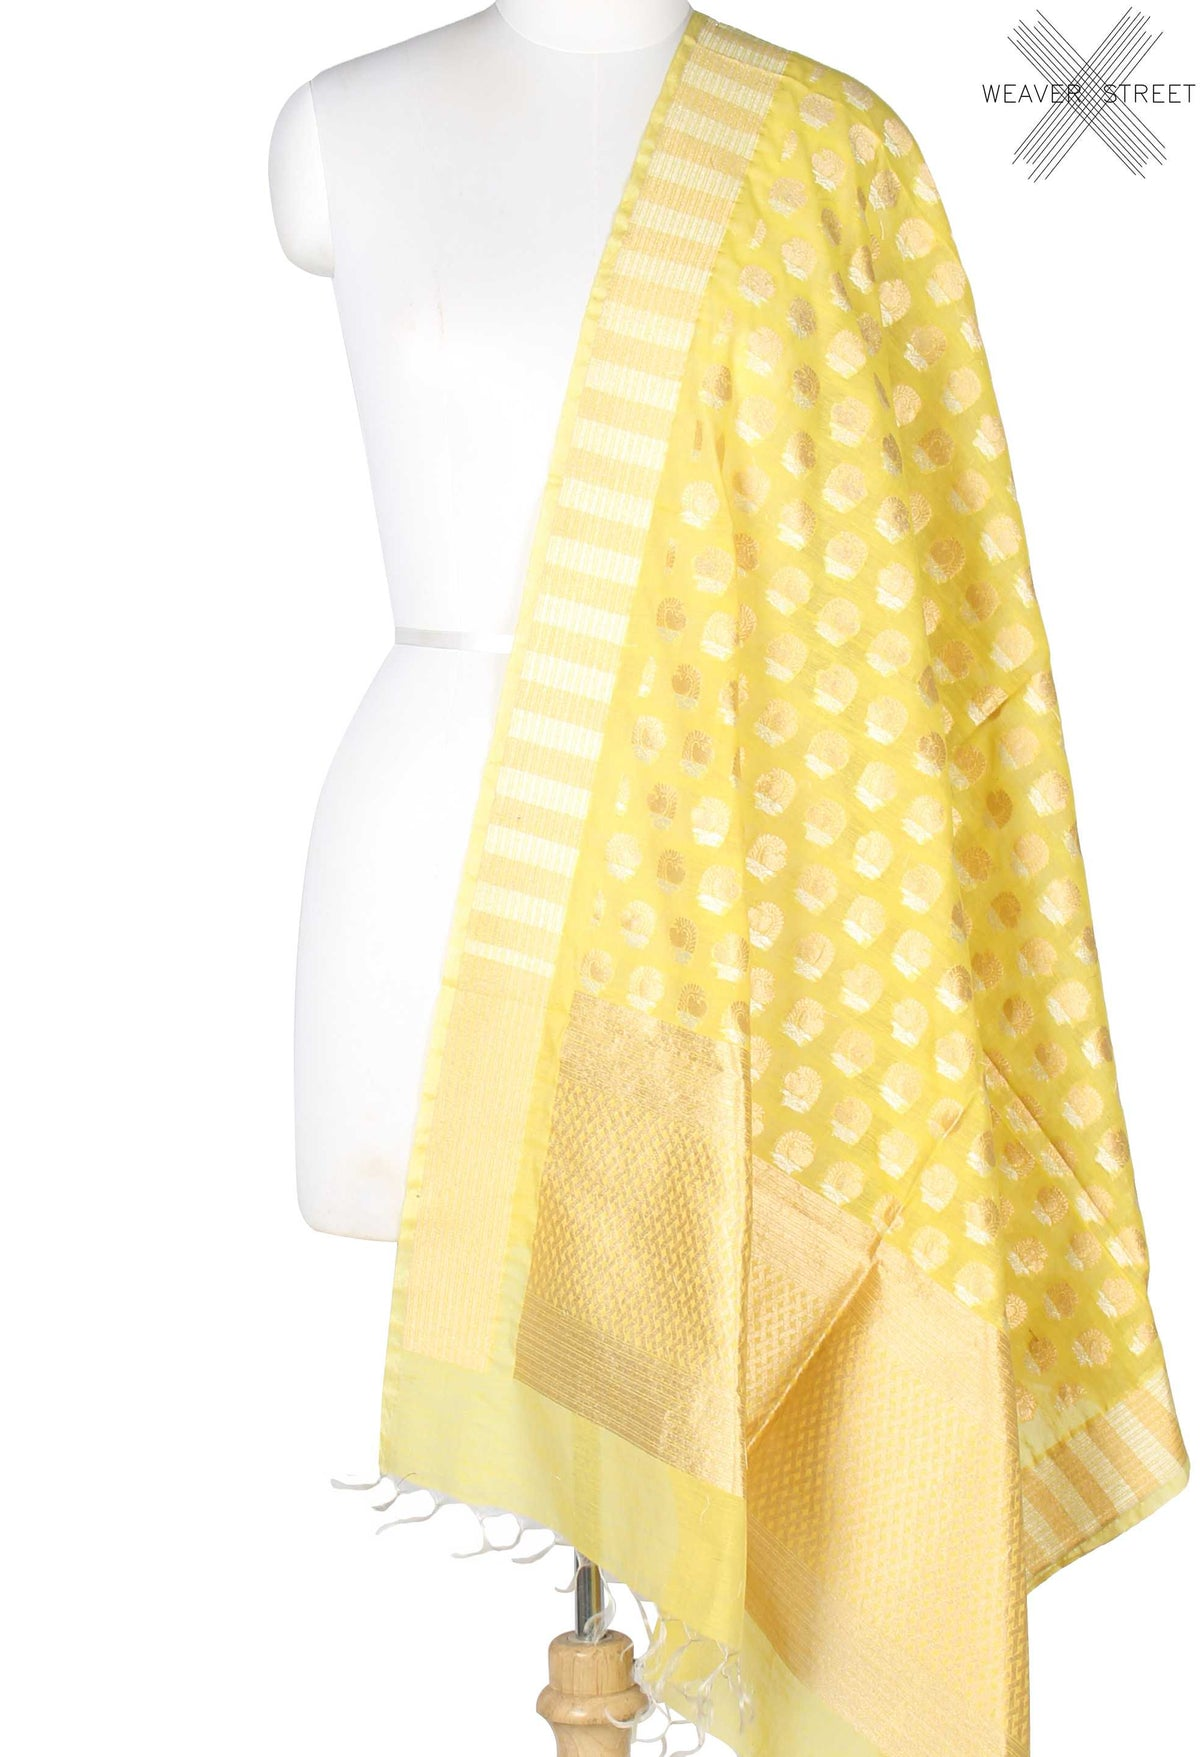 Yellow Silk Cotton Banarasi Dupatta with sona rupa stylized motifs (1) Main